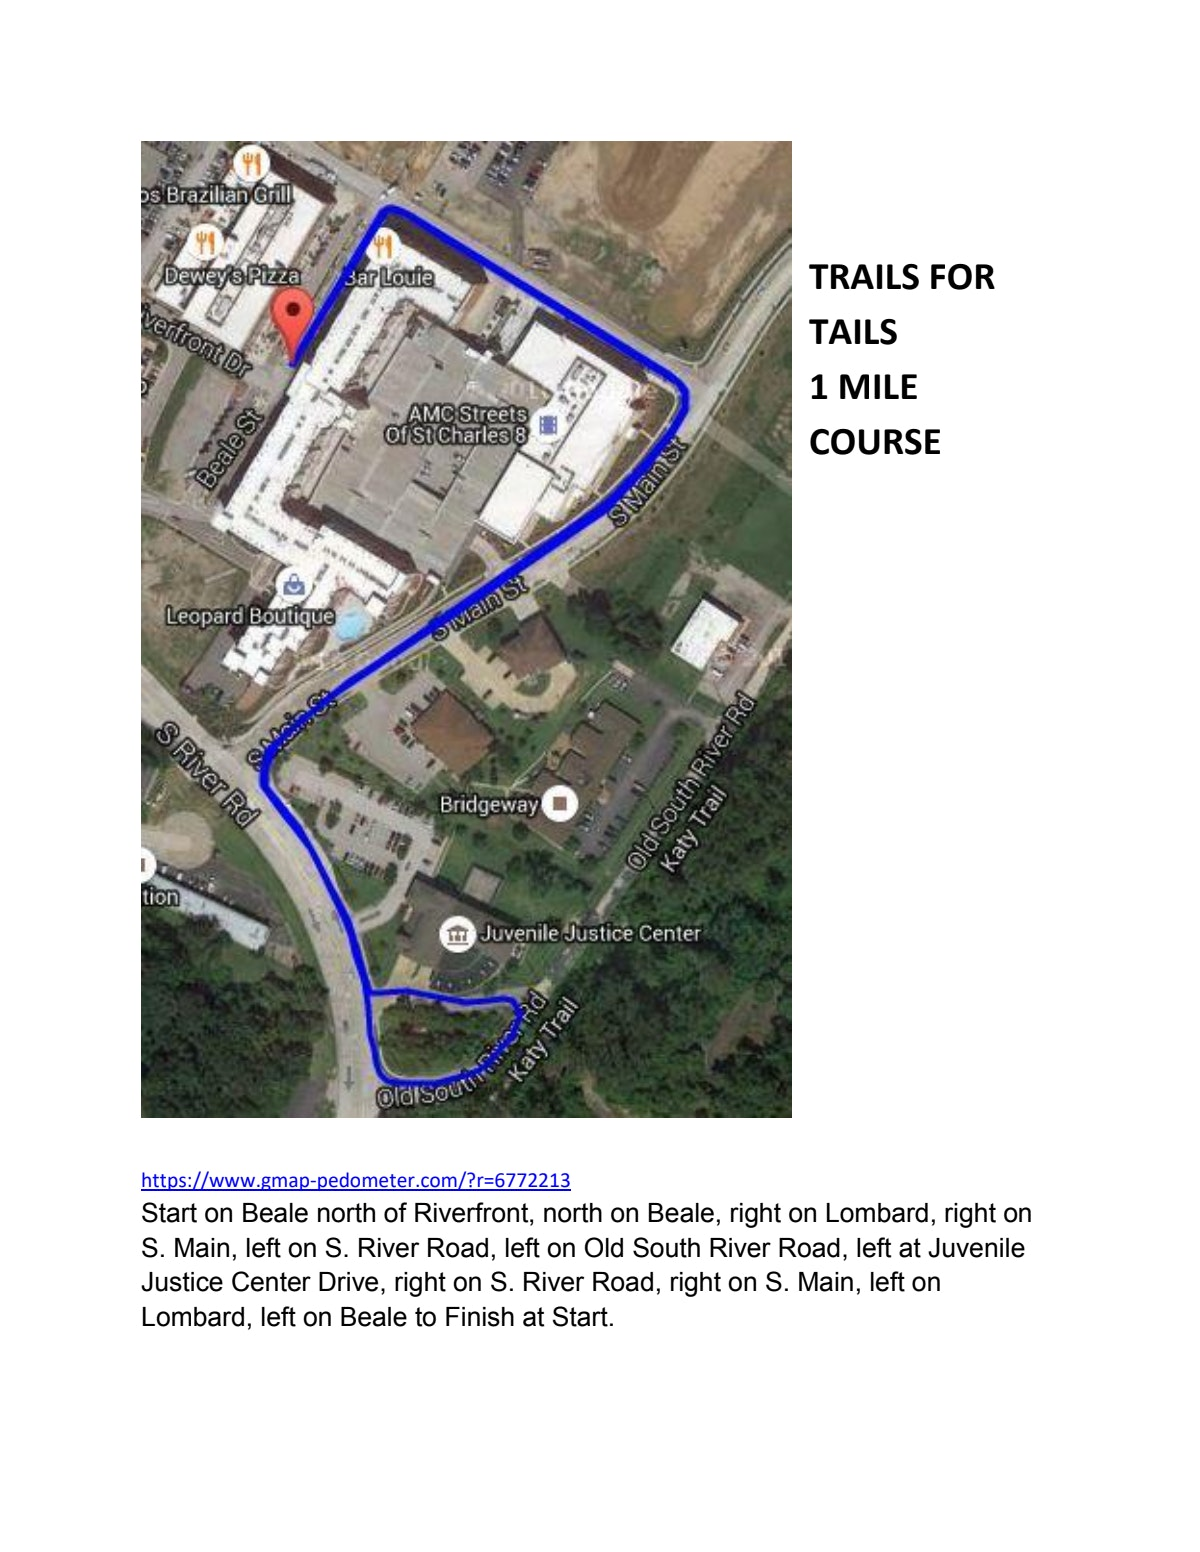 Course map for 1 Mile Course